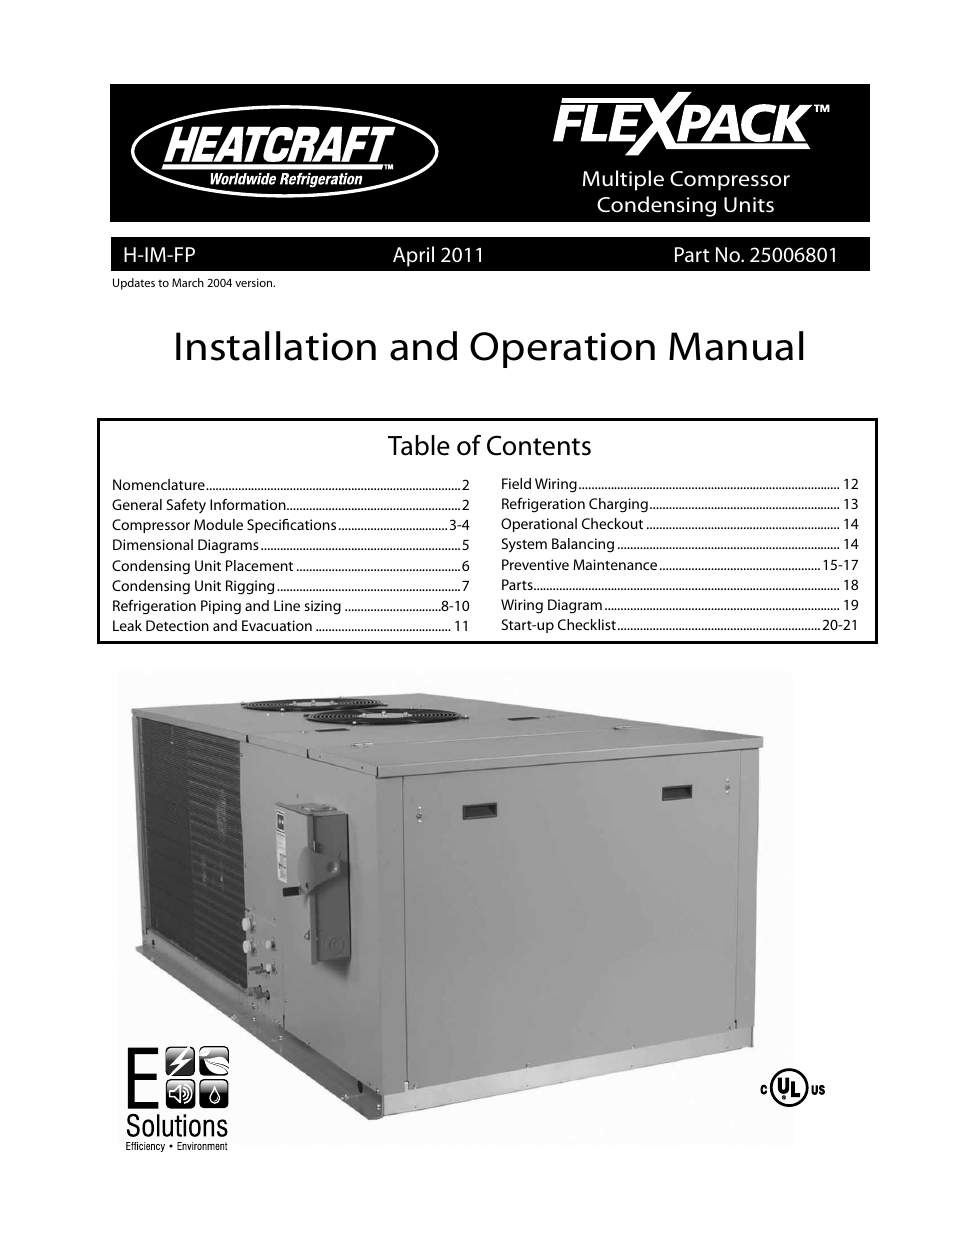 heatcraft refrigeration products flexpack 25006801 user manual heatcraft refrigeration products flexpack 25006801 user manual 24 pages